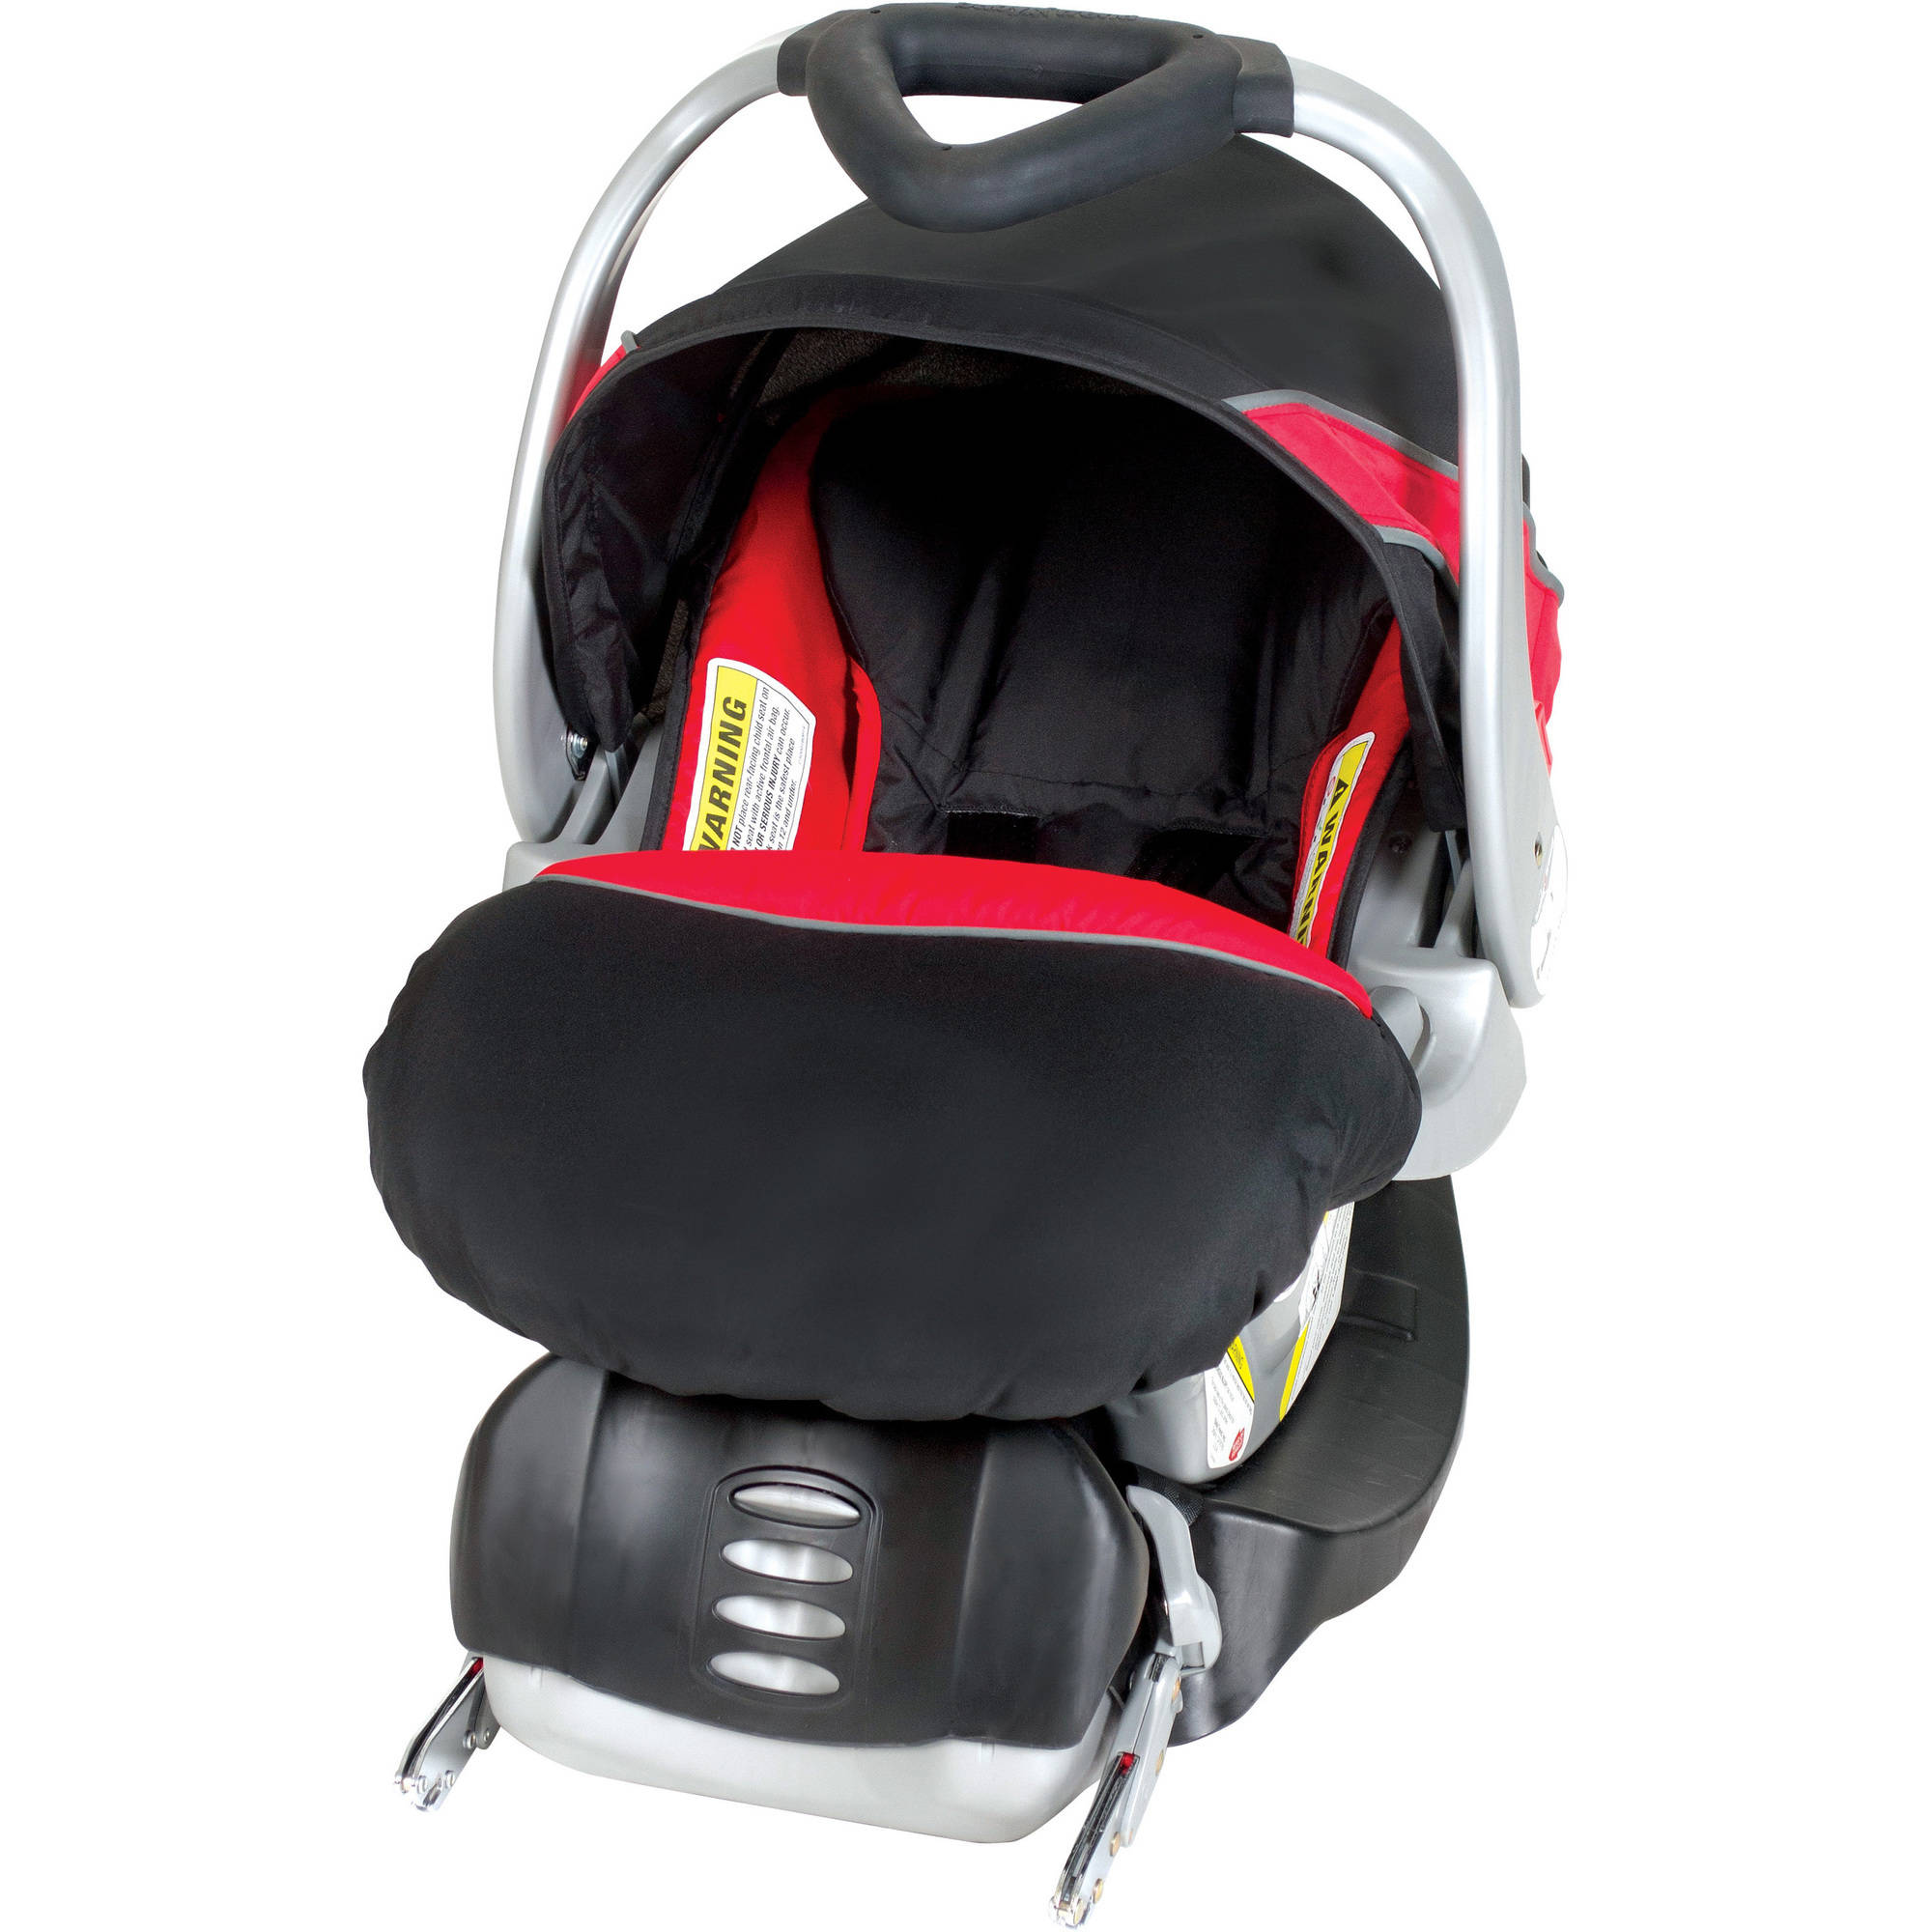 Baby Trend Flex-Loc Infant Car Seat, Picante